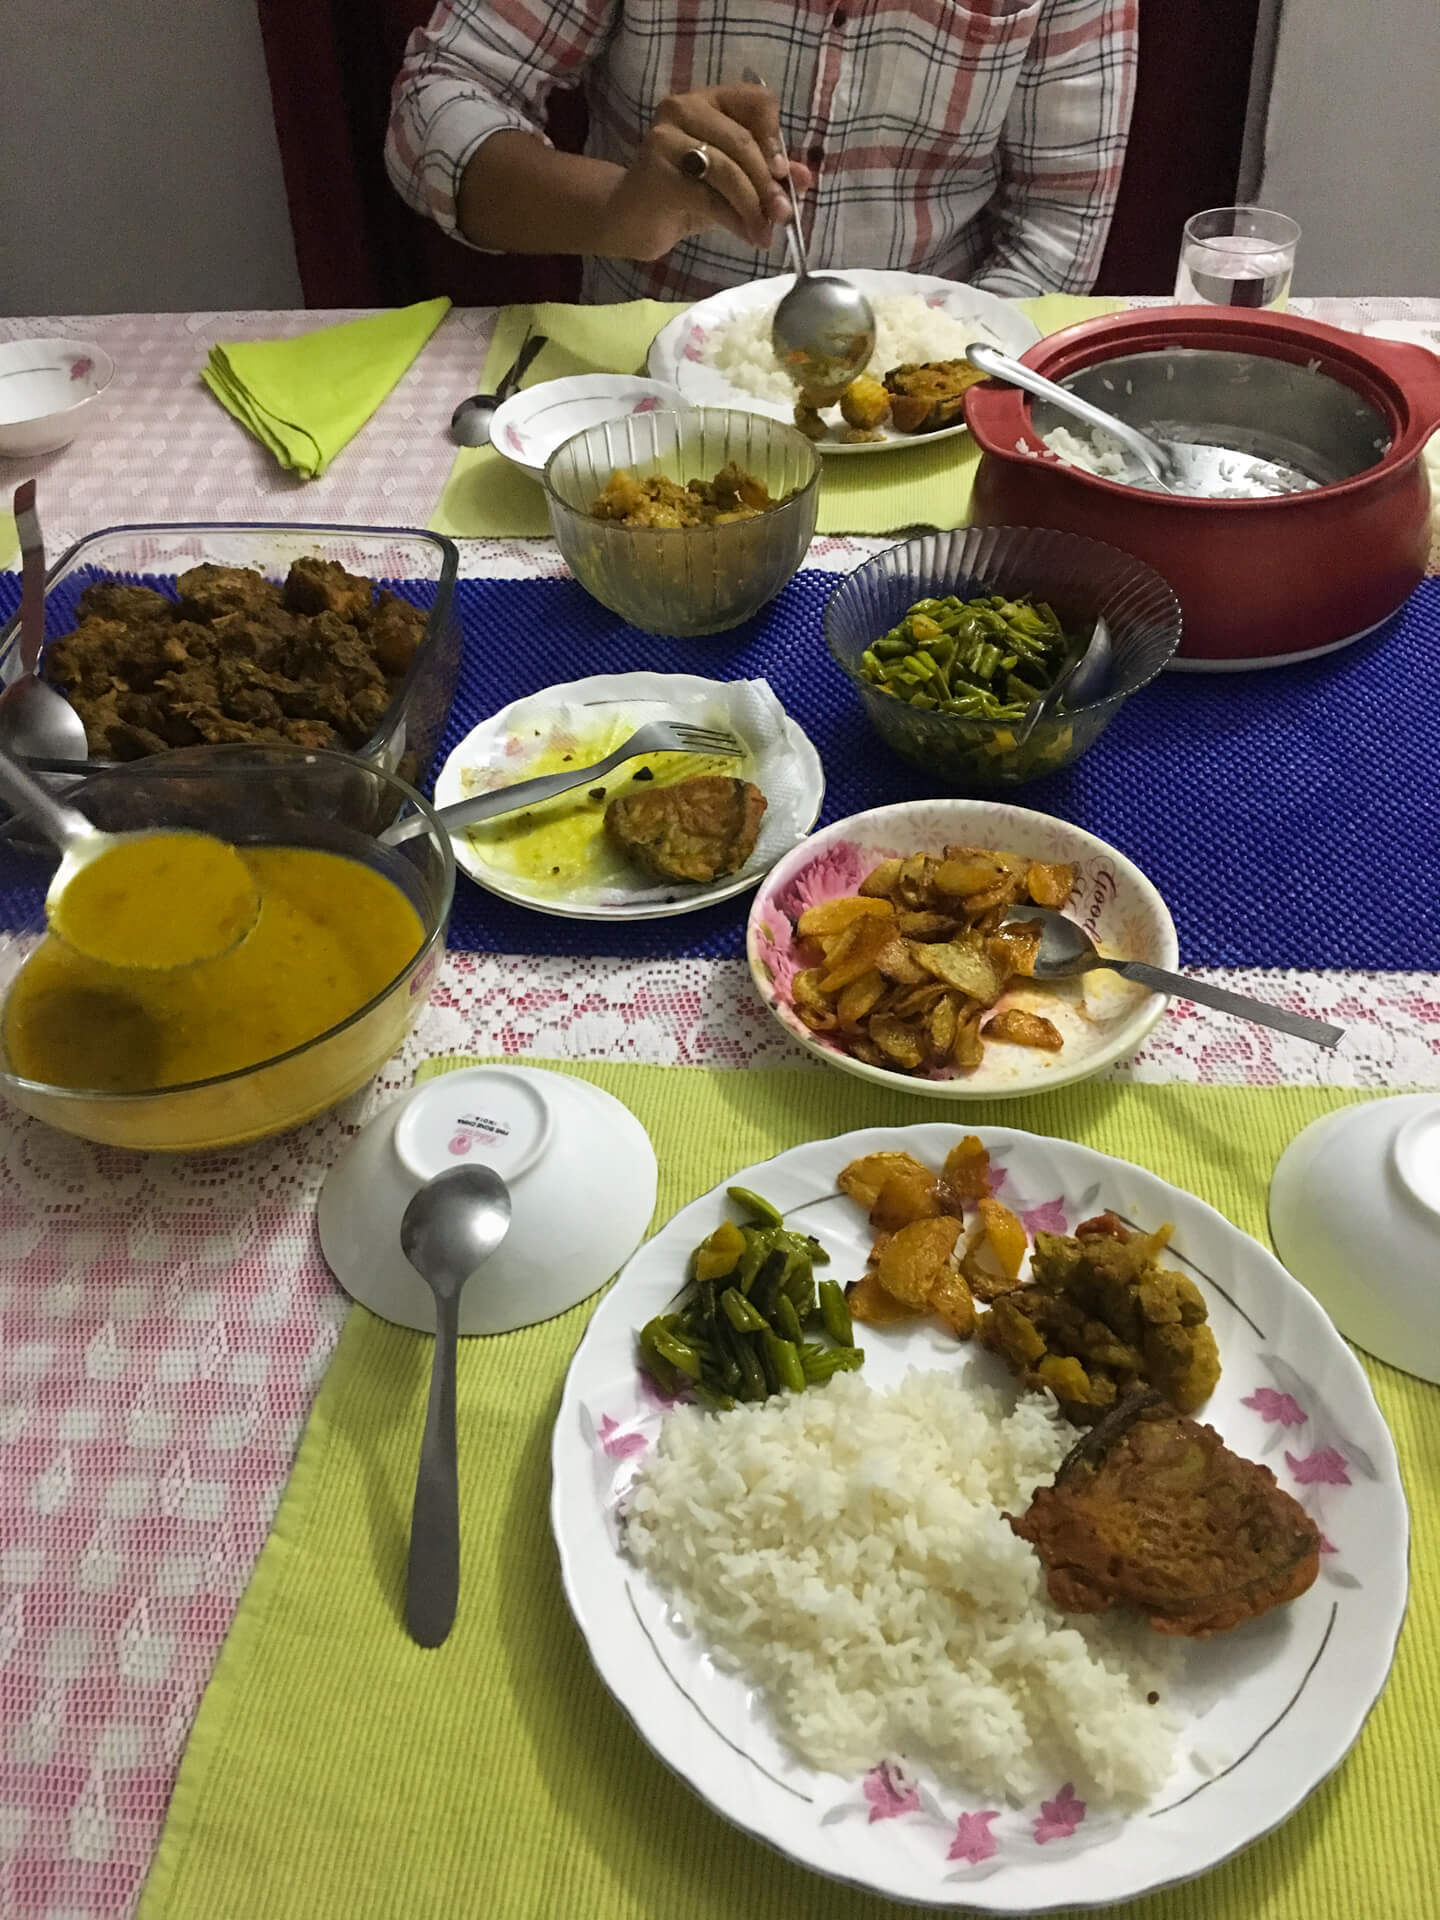 The meal that Bhaskarnil's cousin's wife cooked for us.